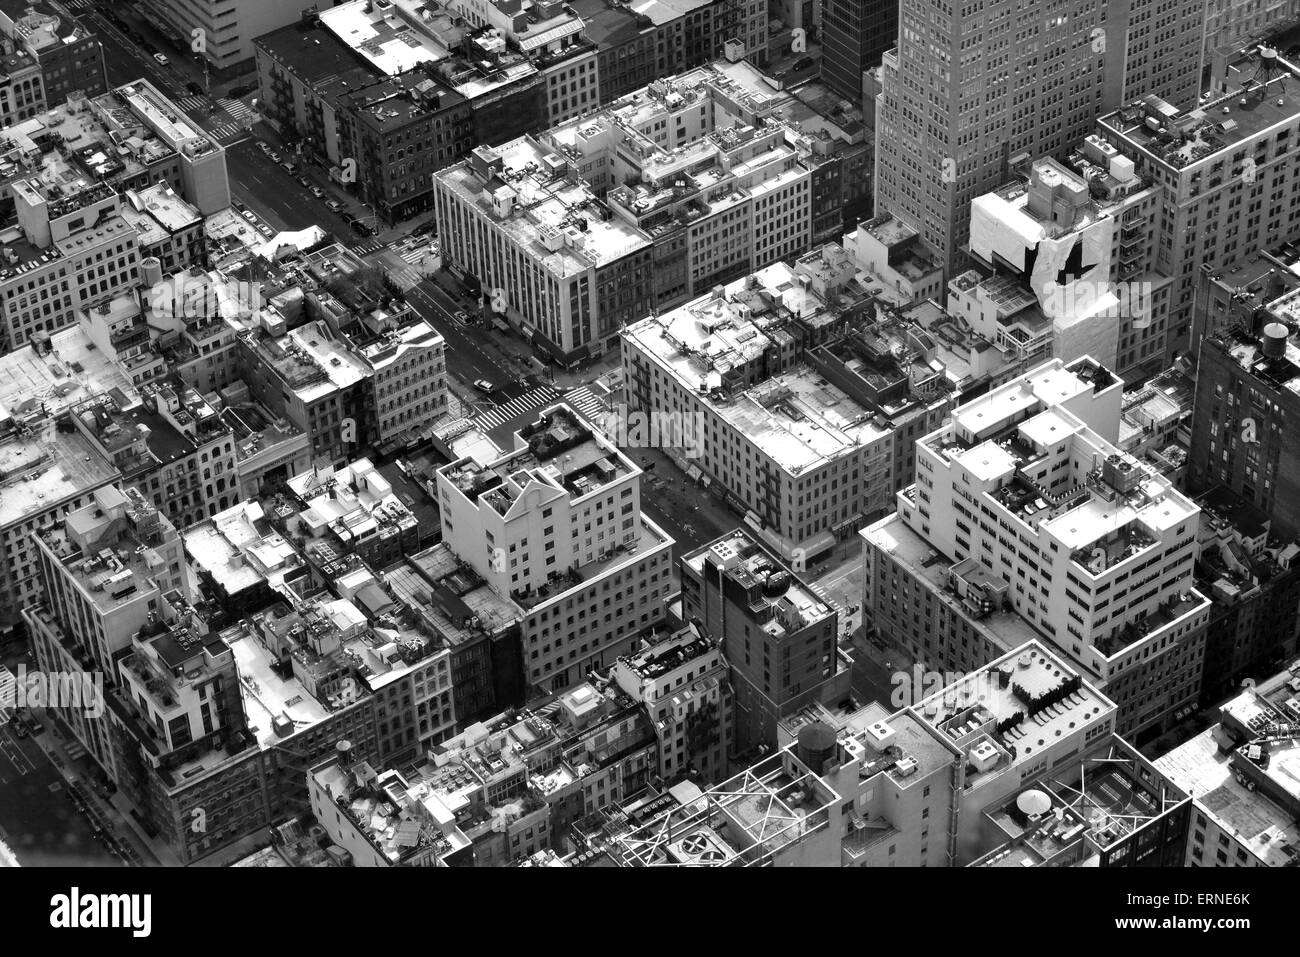 Blickte auf Tribeca in Lower Manhattan. Stockbild